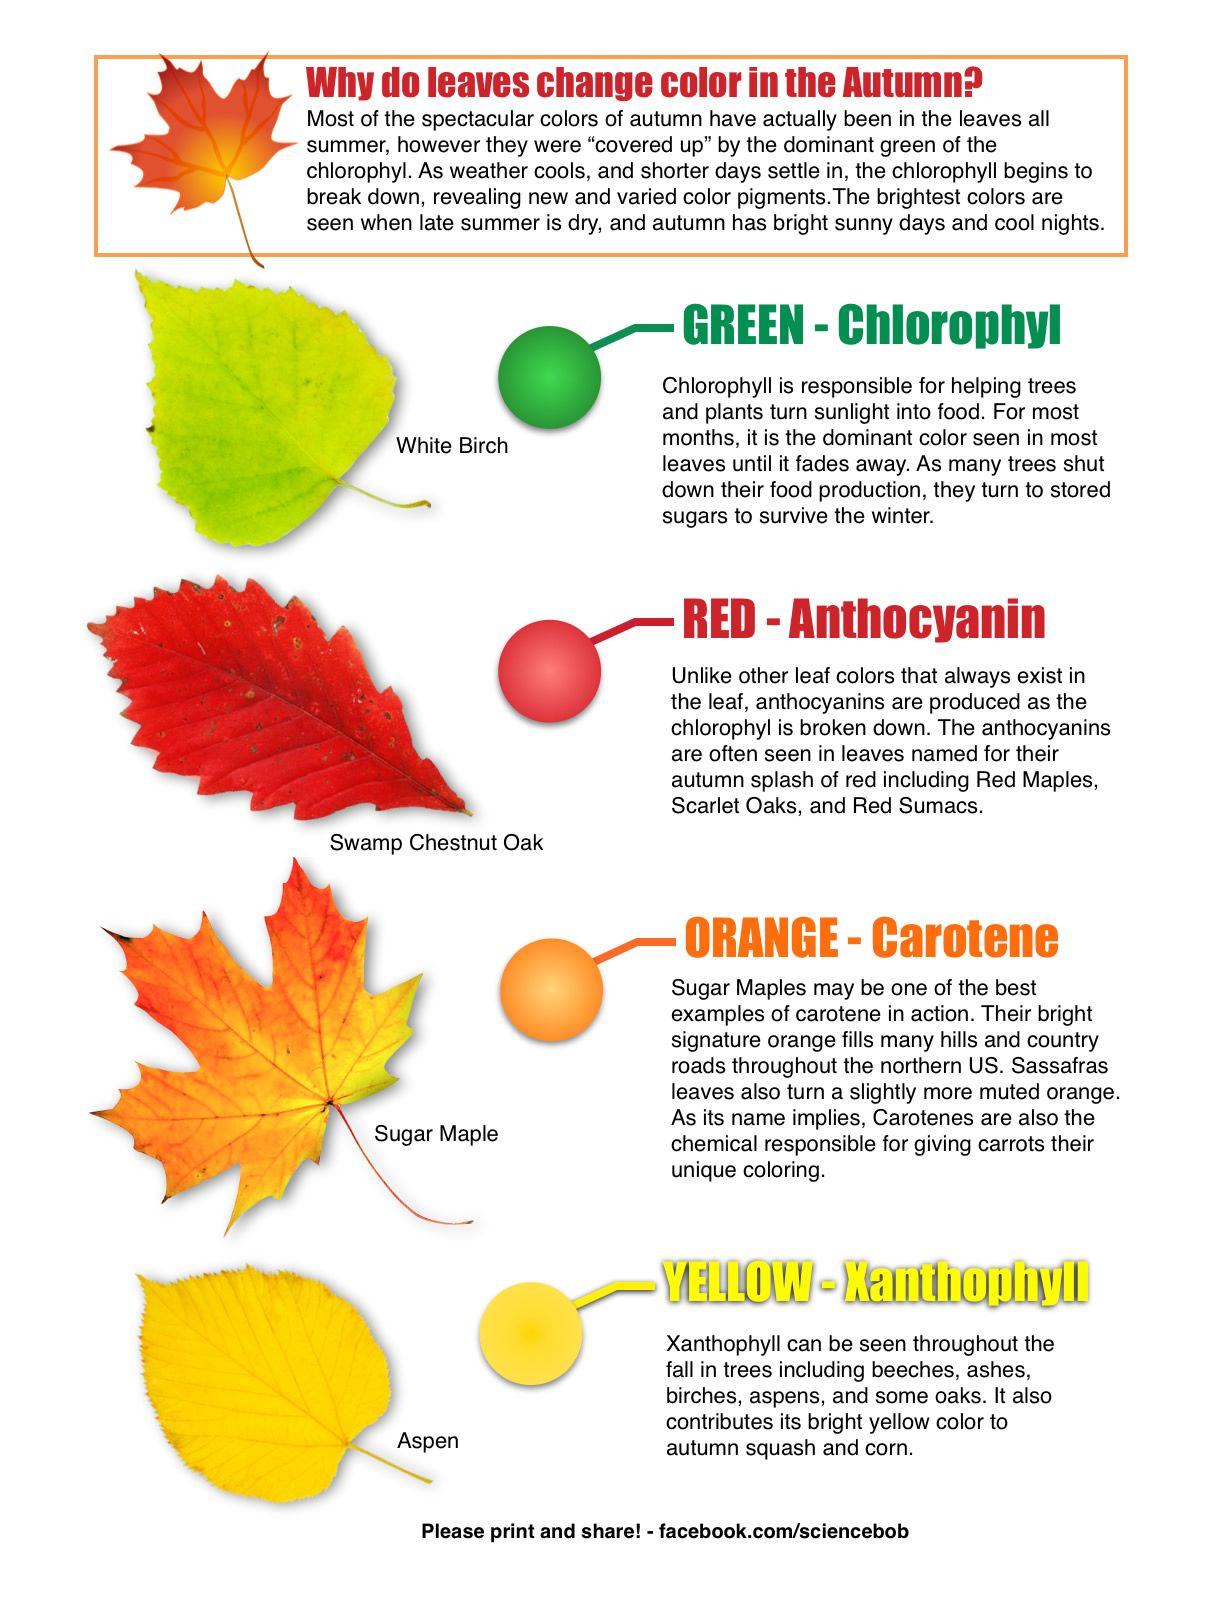 Why Do Leaves Change Color In The Autumn From Science Bob S Blog